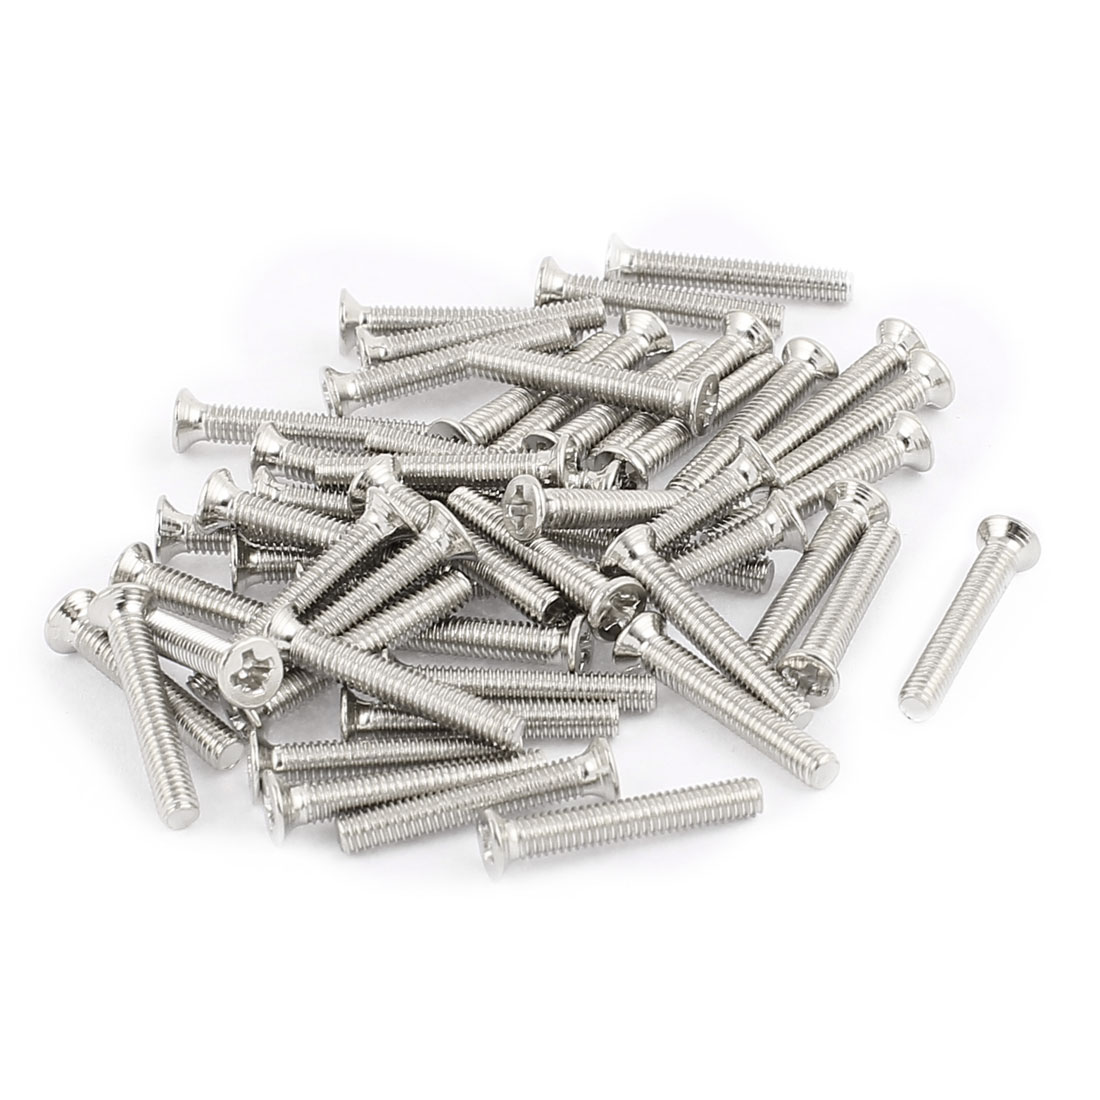 50 Pcs M2.5x16mm Stainless Steel Countersunk Flat Head Phillips Machine Screws Bolts